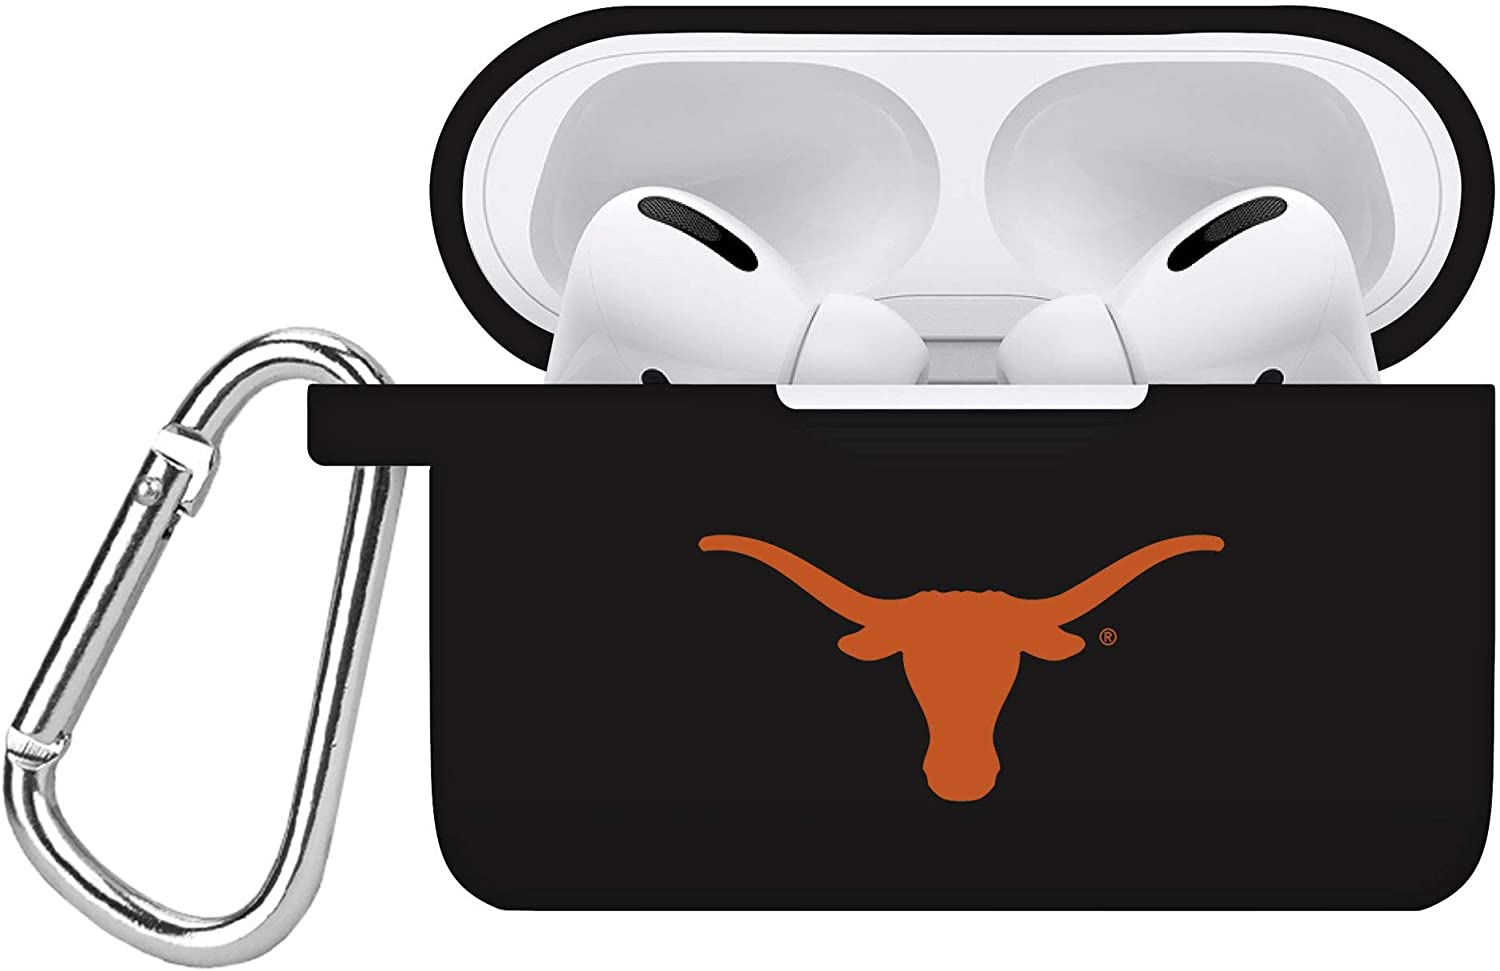 AFFINITY BANDS Texas Longhorns Silicone Case Cover Compatible with Apple AirPods PRO Battery Case - Black